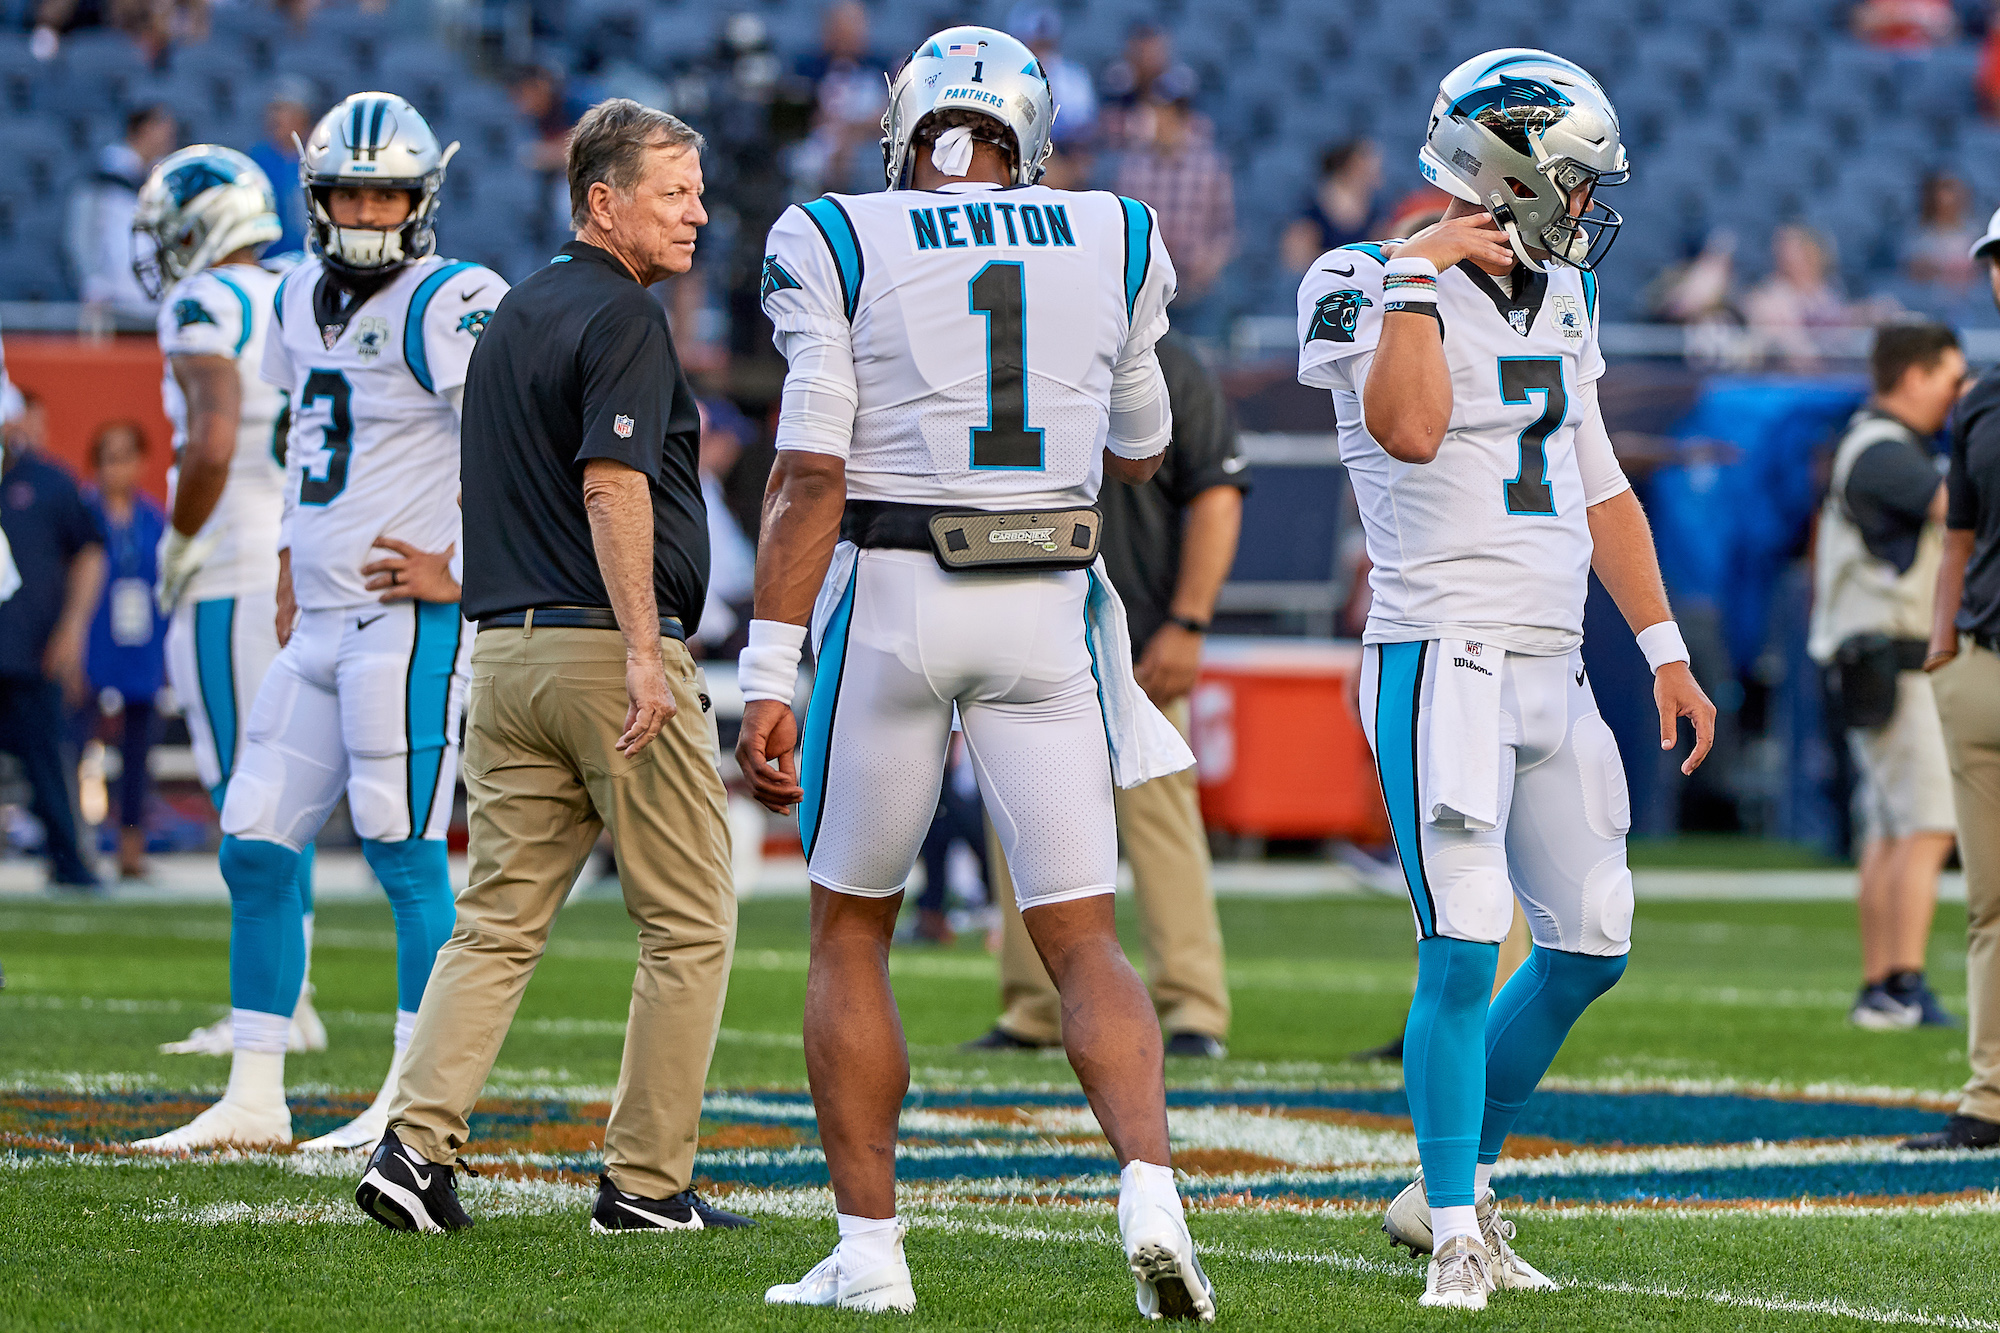 When Bill Belichick came calling, Norv Turner had plenty of praise for Cam Newton.